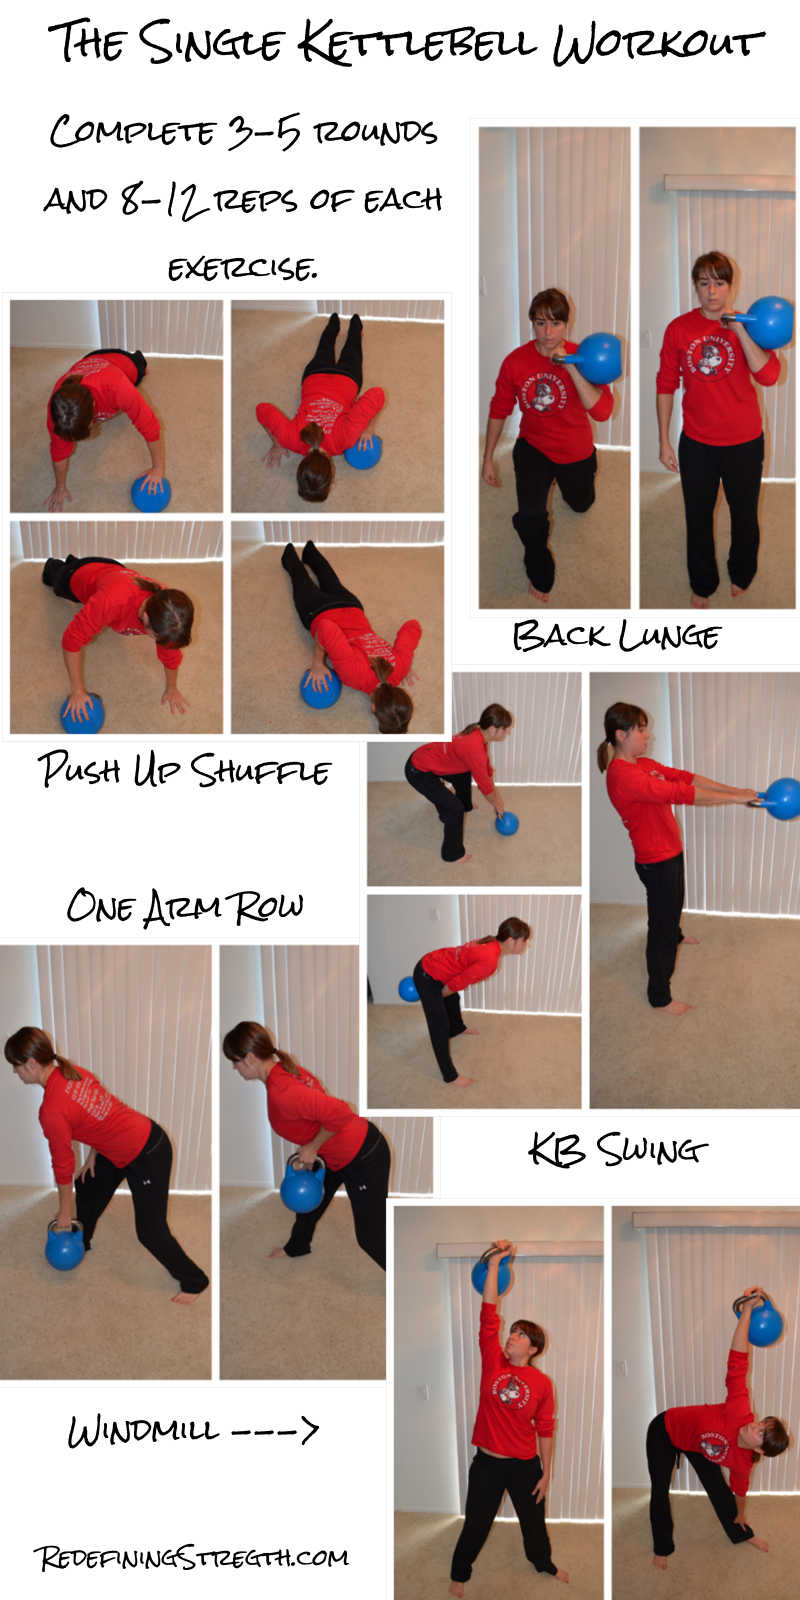 quick kettlebell full body workout